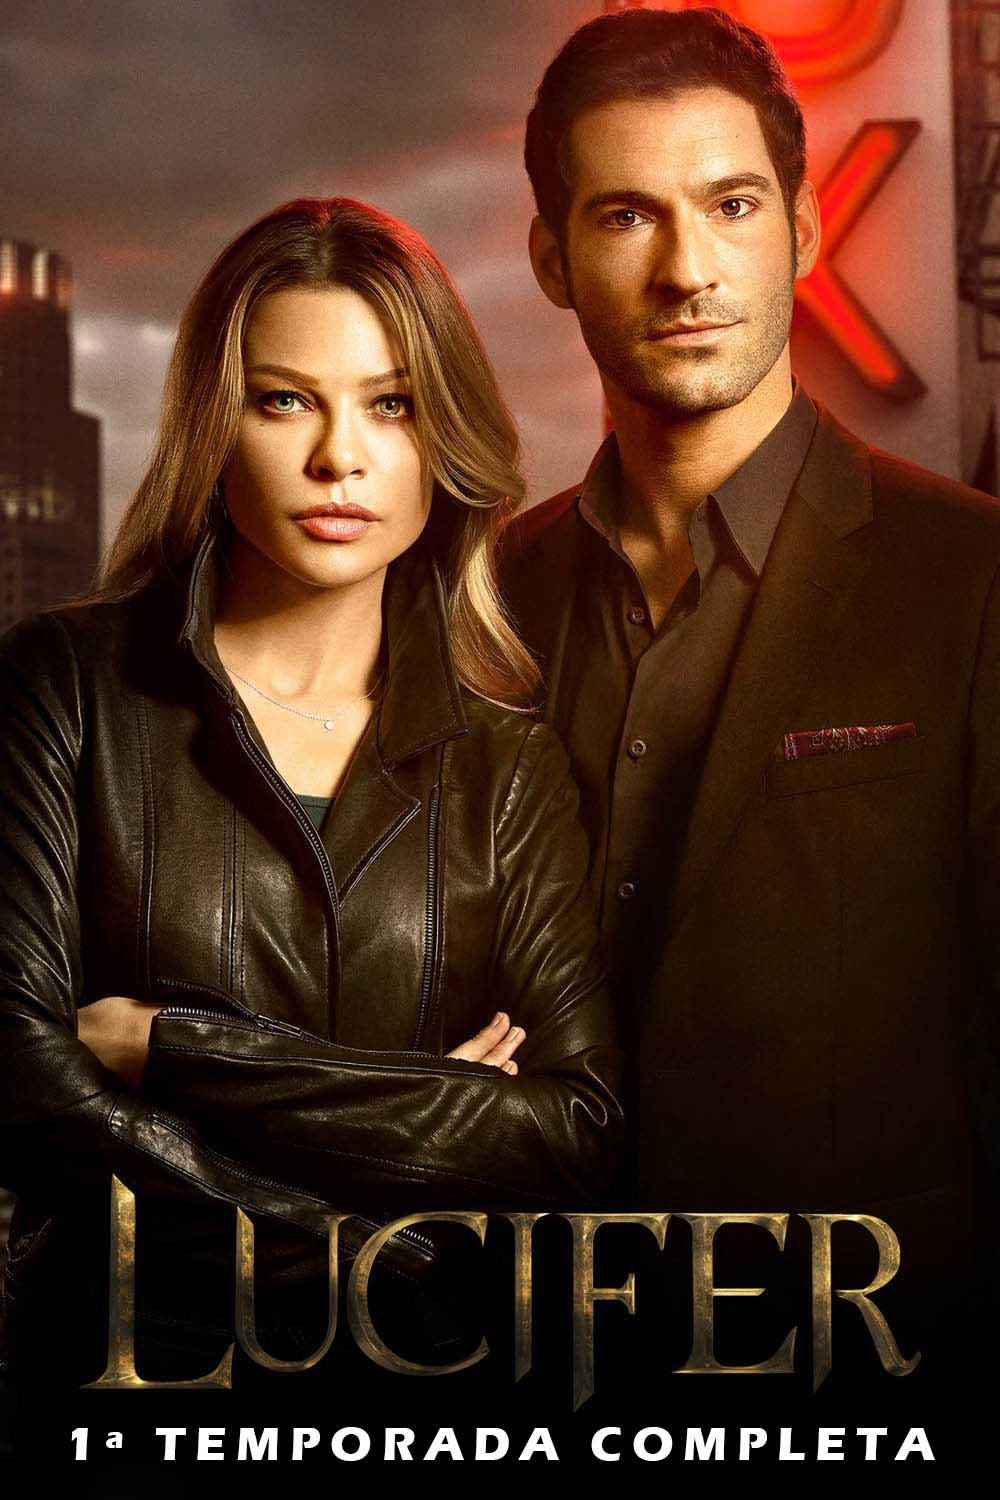 Lucifer 1ª Temporada (2016) Torrent – BluRay 720p Dual Áudio